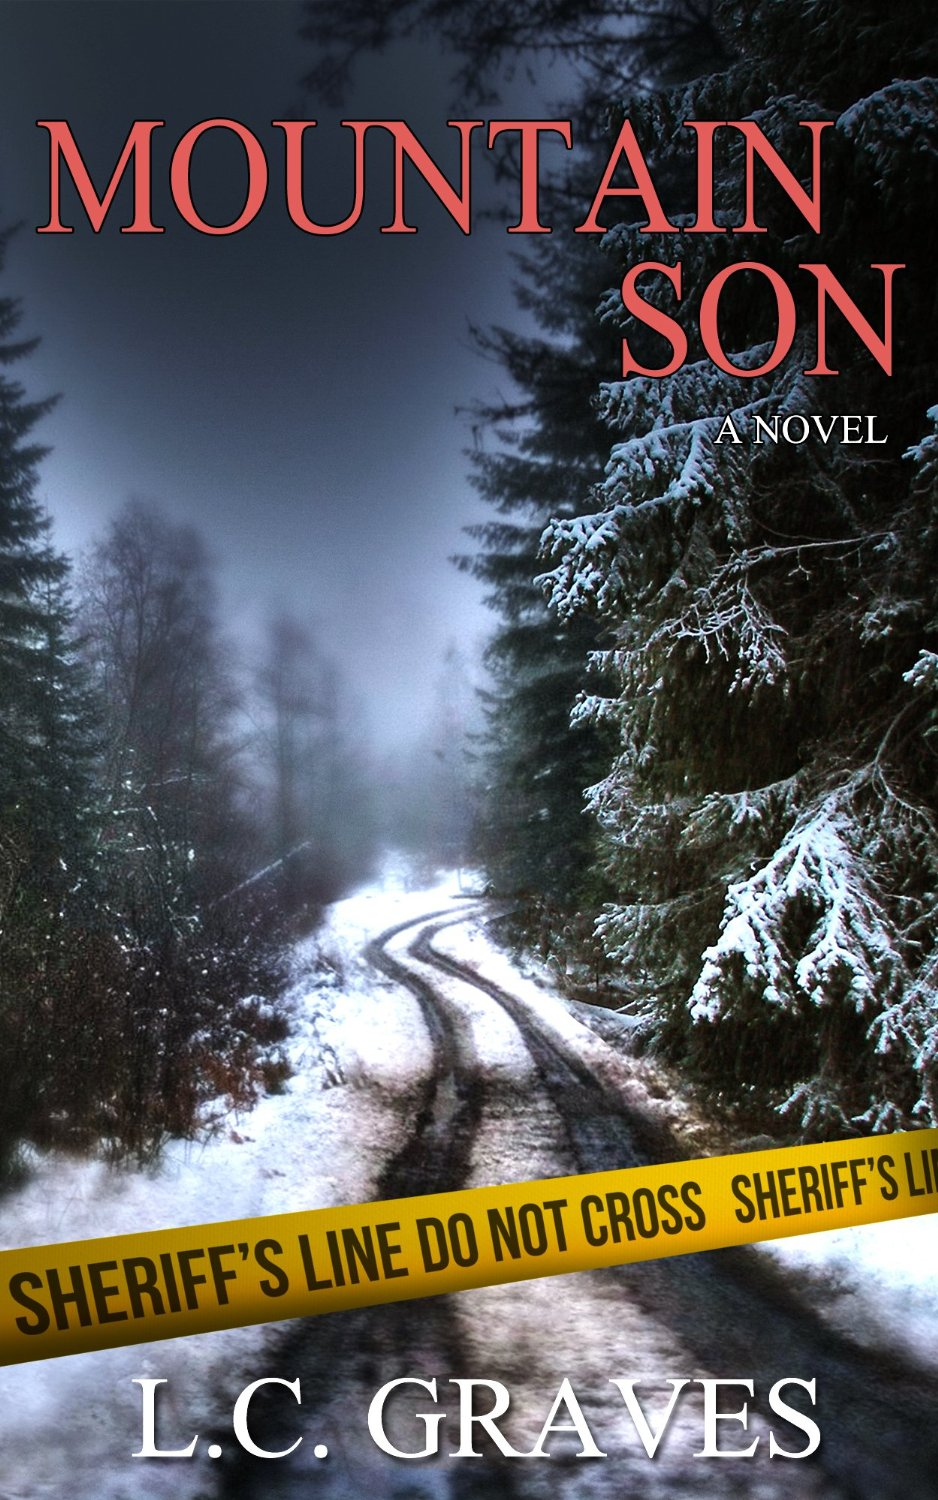 Mountain Son by L.C. Graves